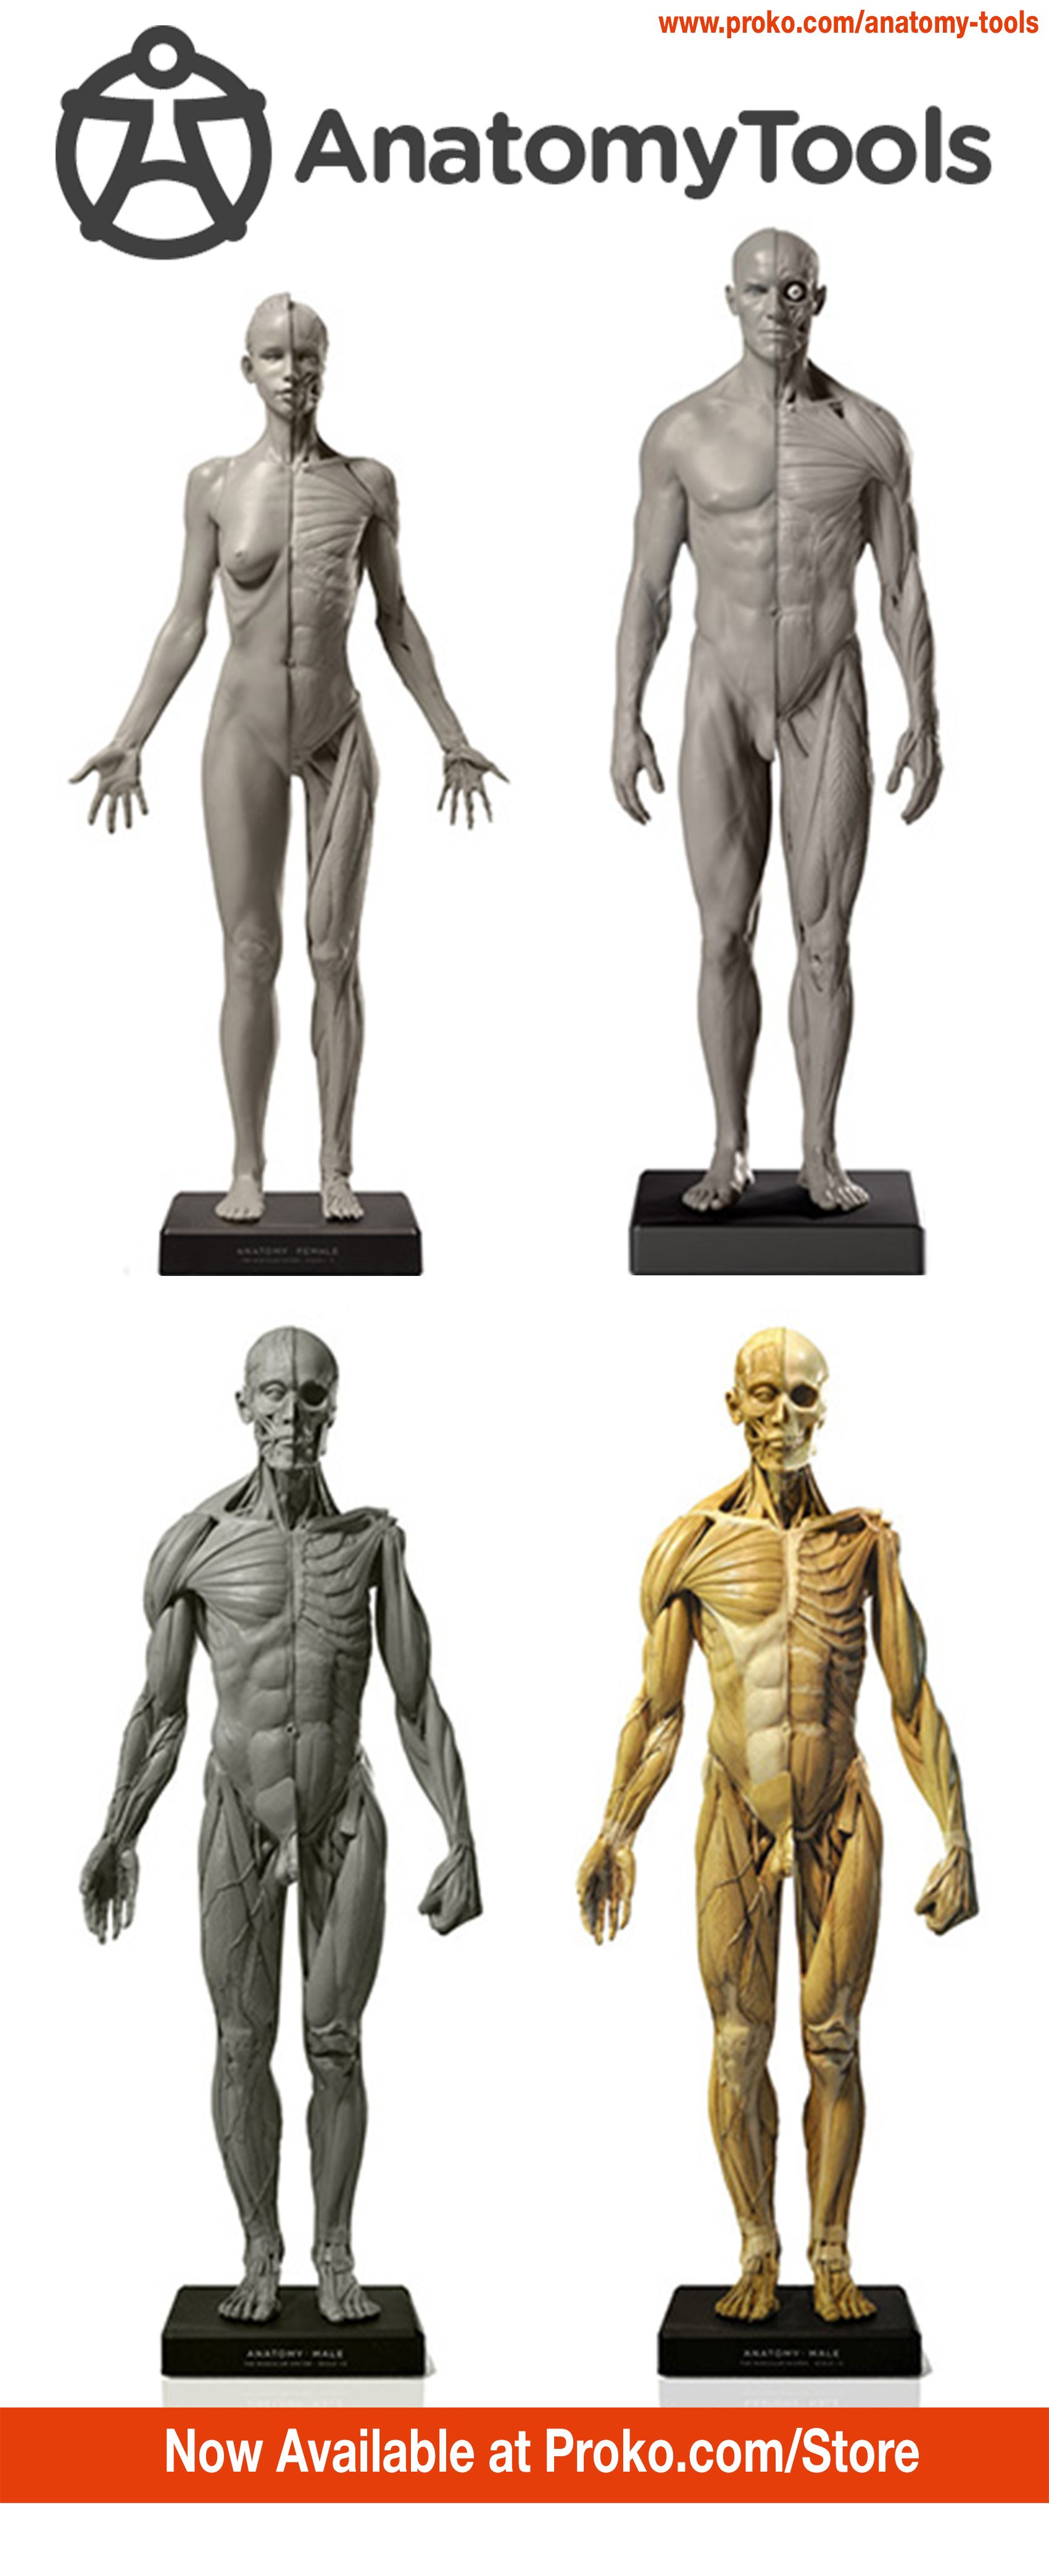 AnatomyTools has the best anatomy sculptures on the market. I use ...